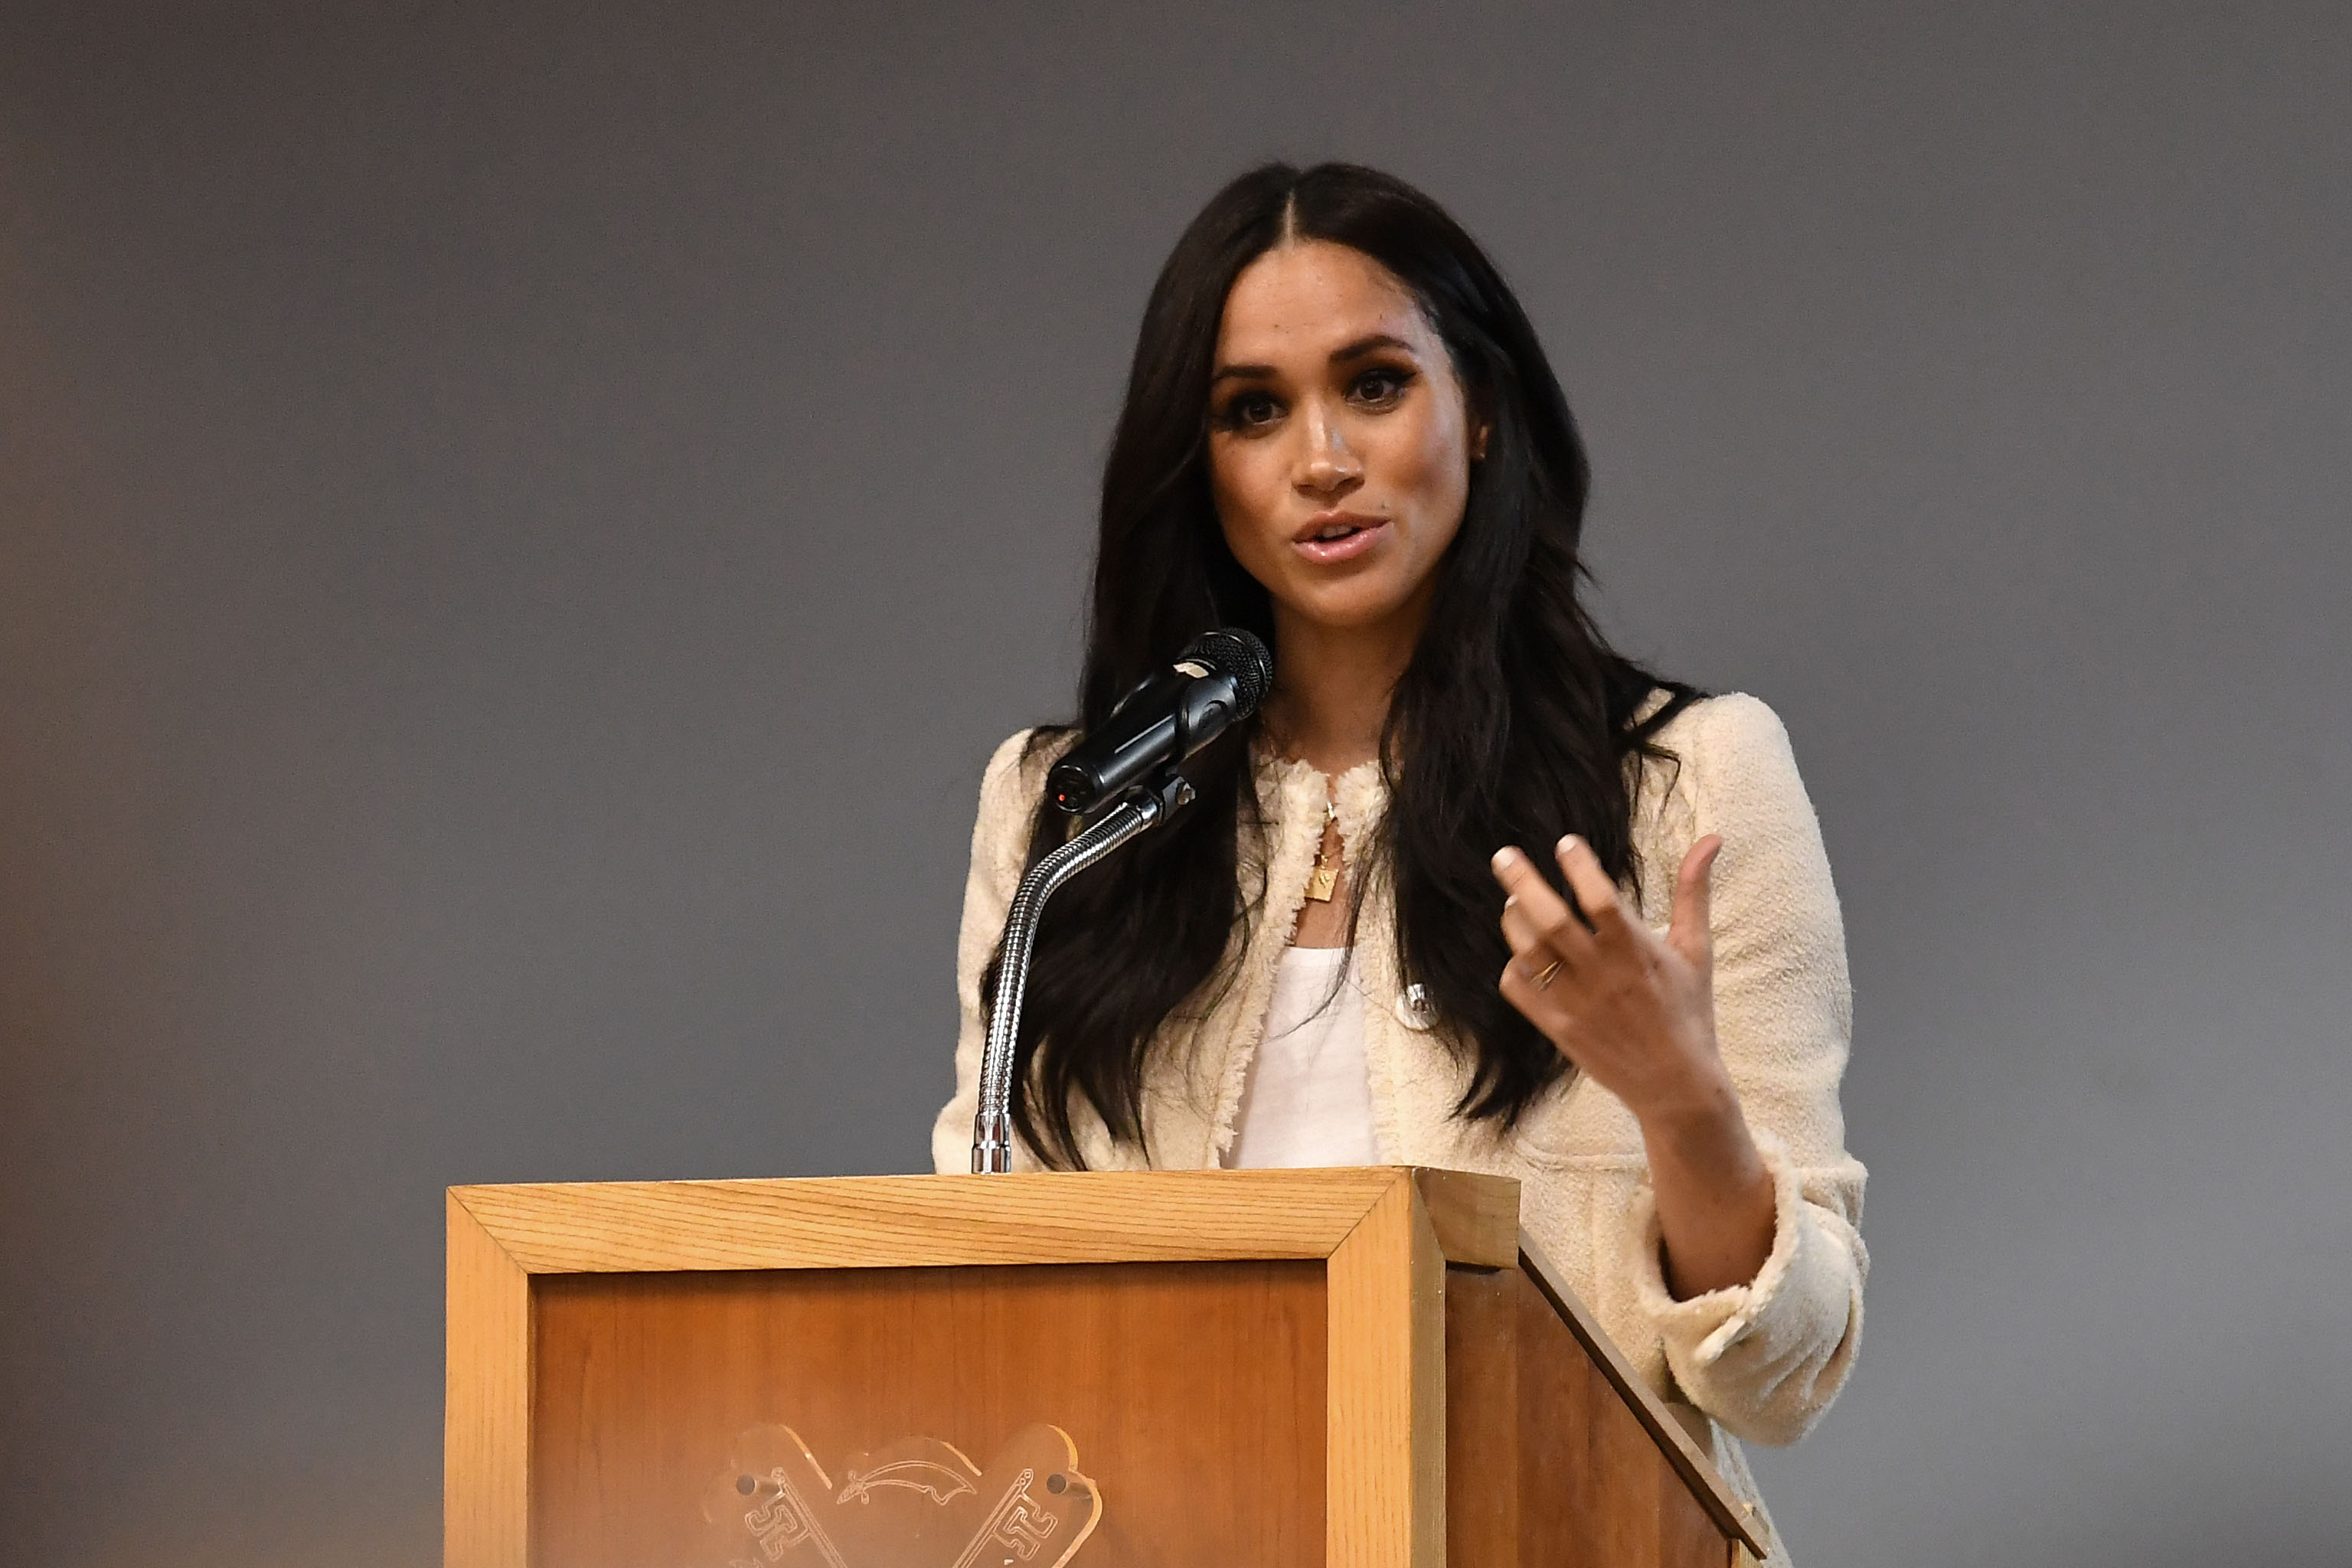 Meghan Markle pays tribute to George Floyd in commencement speech and other stories from this week